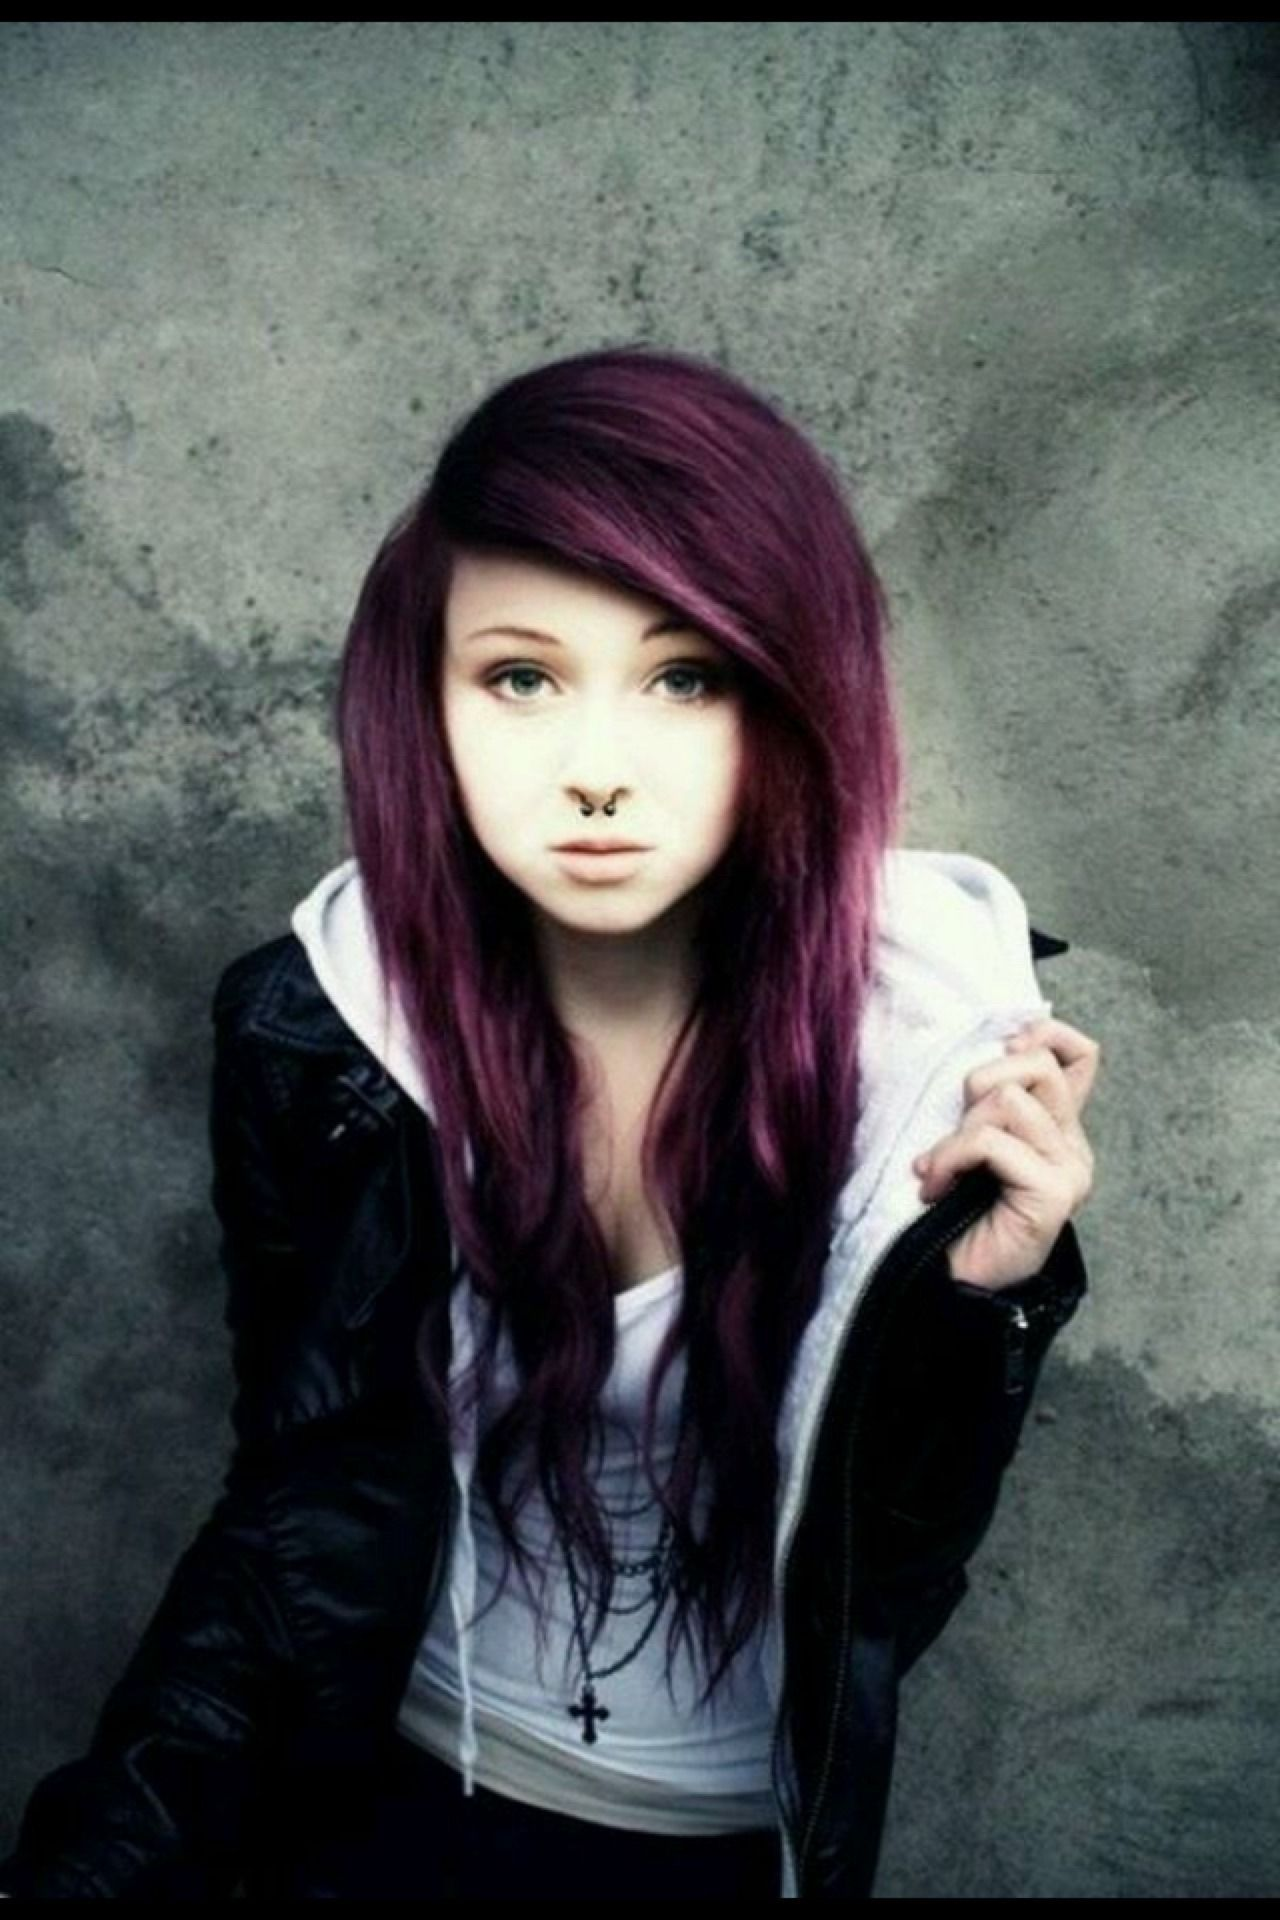 15 cute emo hairstyles for girls 2019 : best emo hairstyle